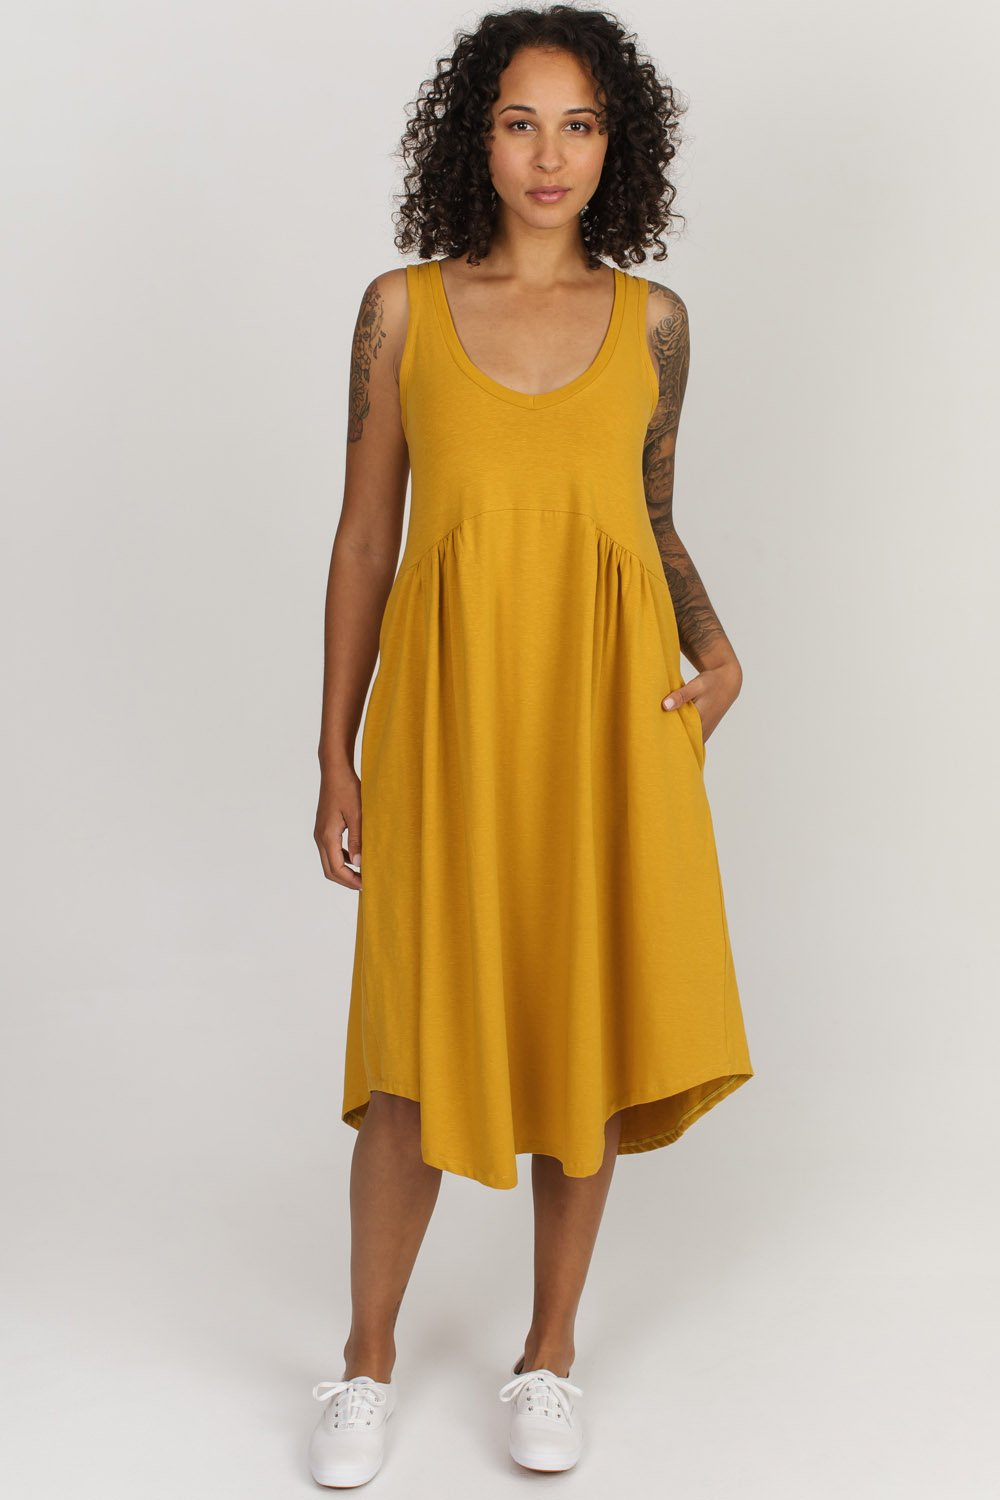 Lillooet Hemp Blend Dress